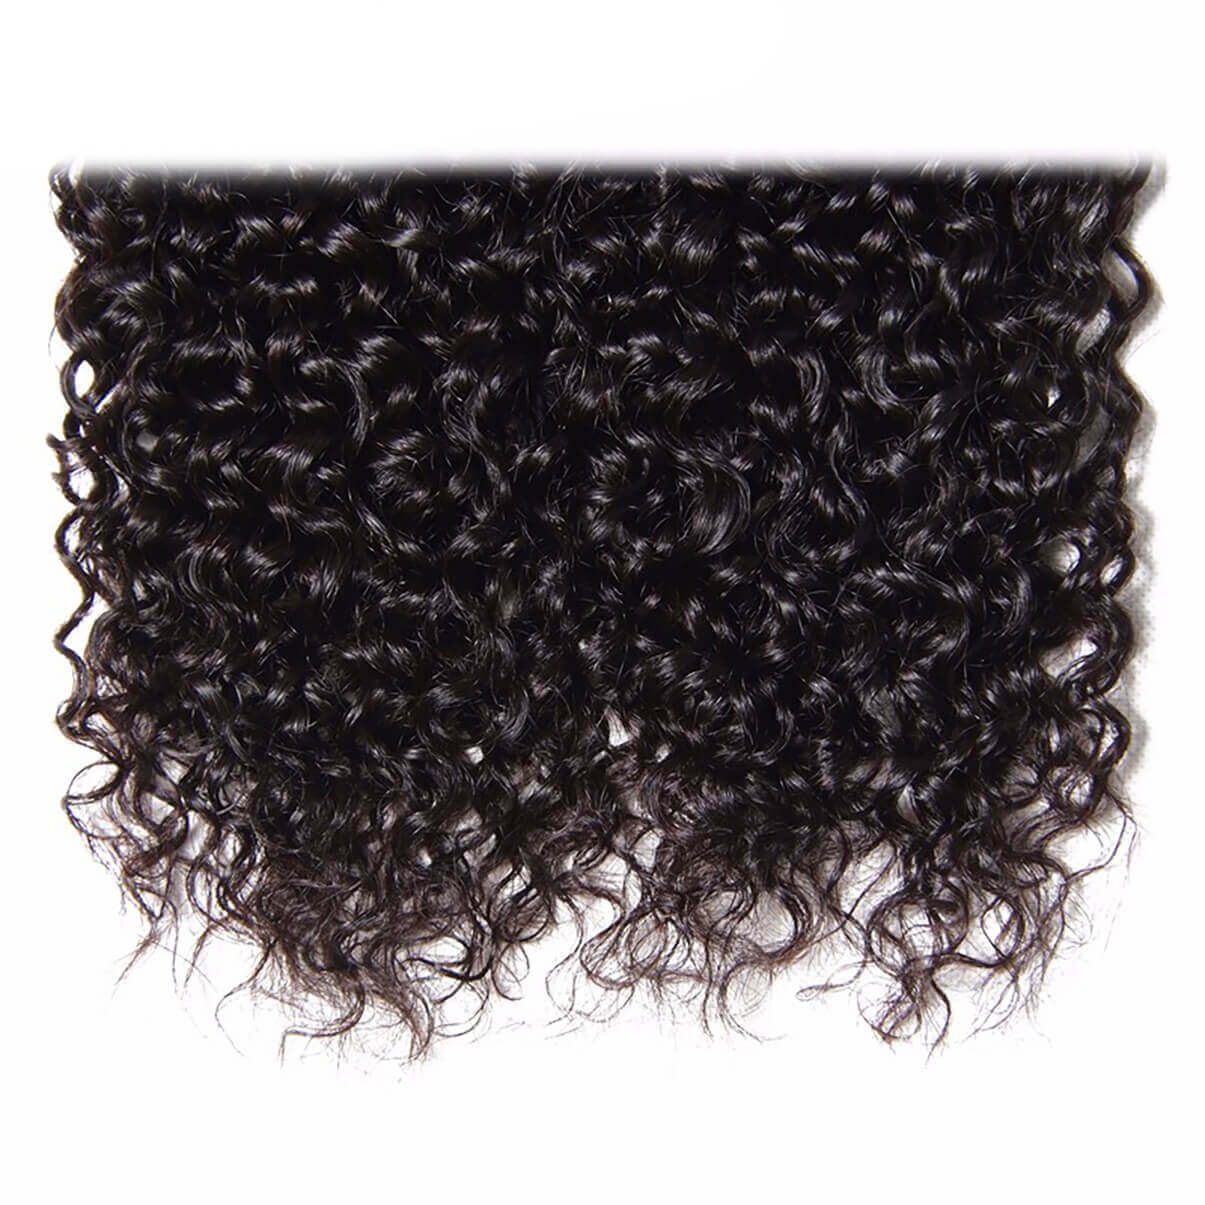 Lakihair 8A Human Hair Bundles Kinky Curly 1 Bundle Deals Virgin Human Hair